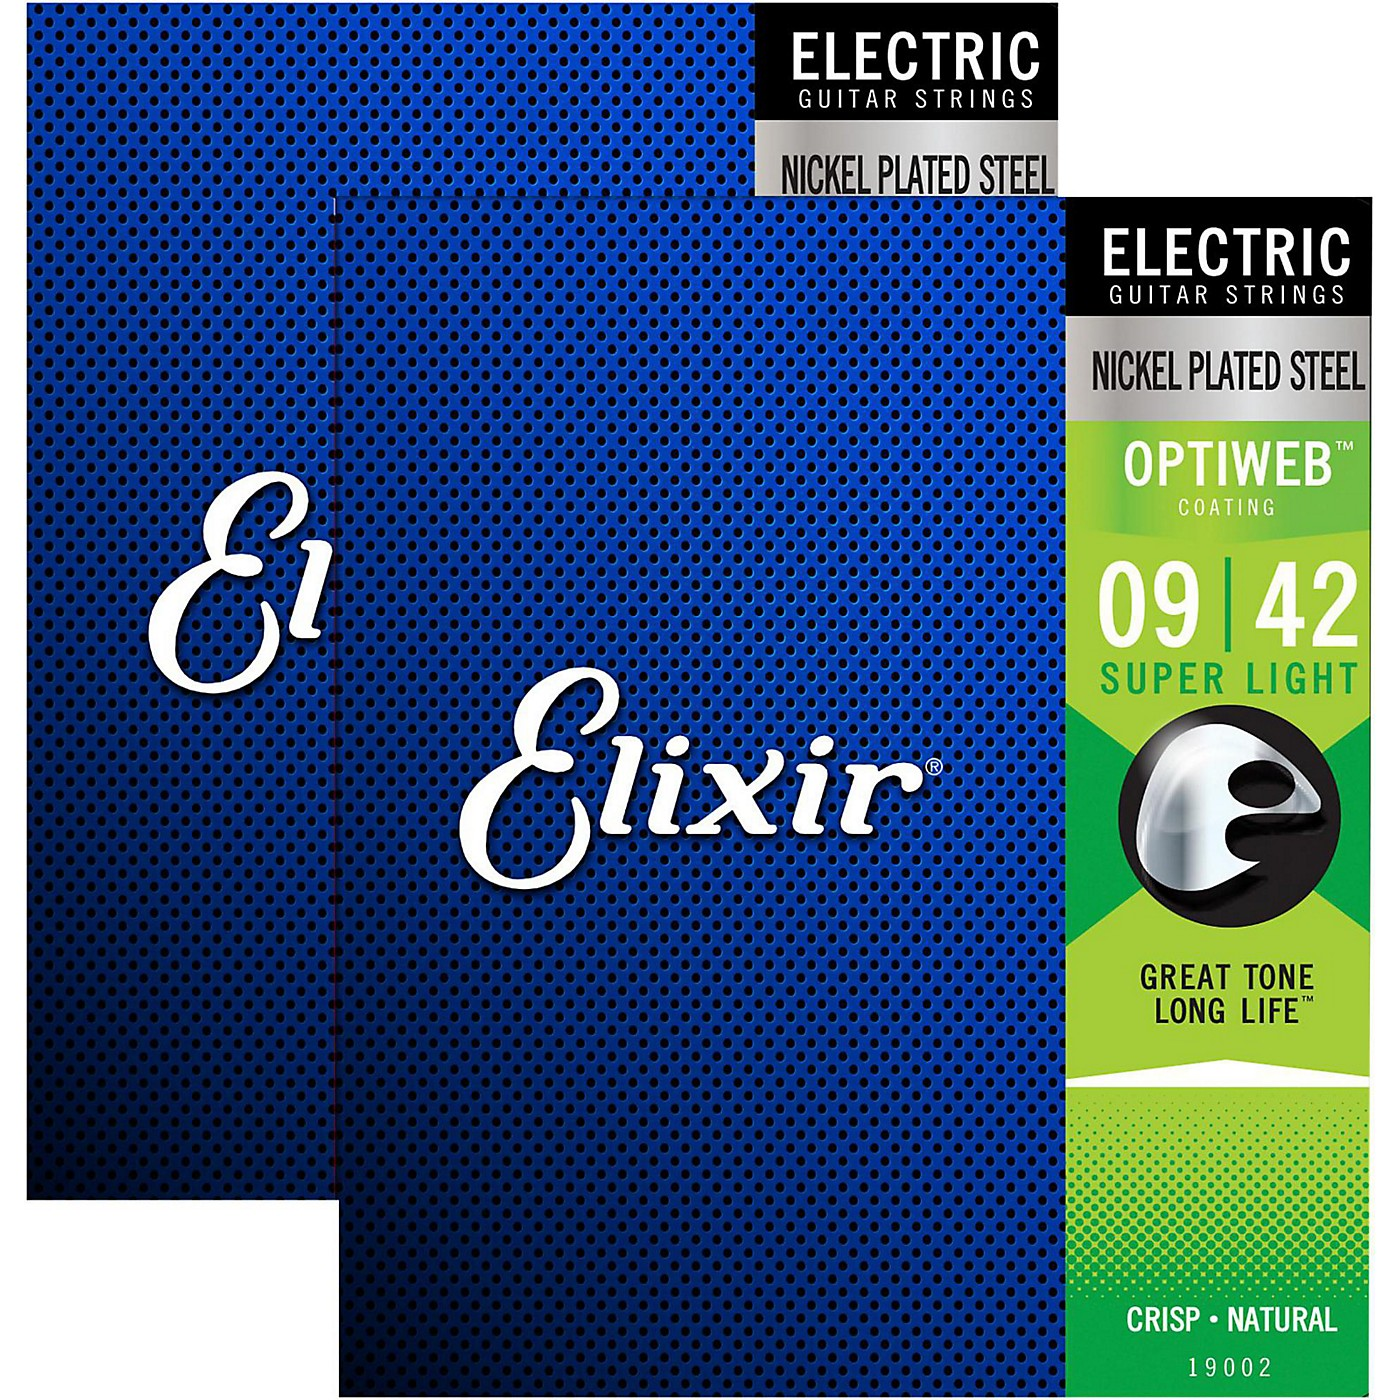 Elixir Electric Guitar Strings with OPTIWEB Coating, Super Light (.009-.042) - 2 Pack thumbnail